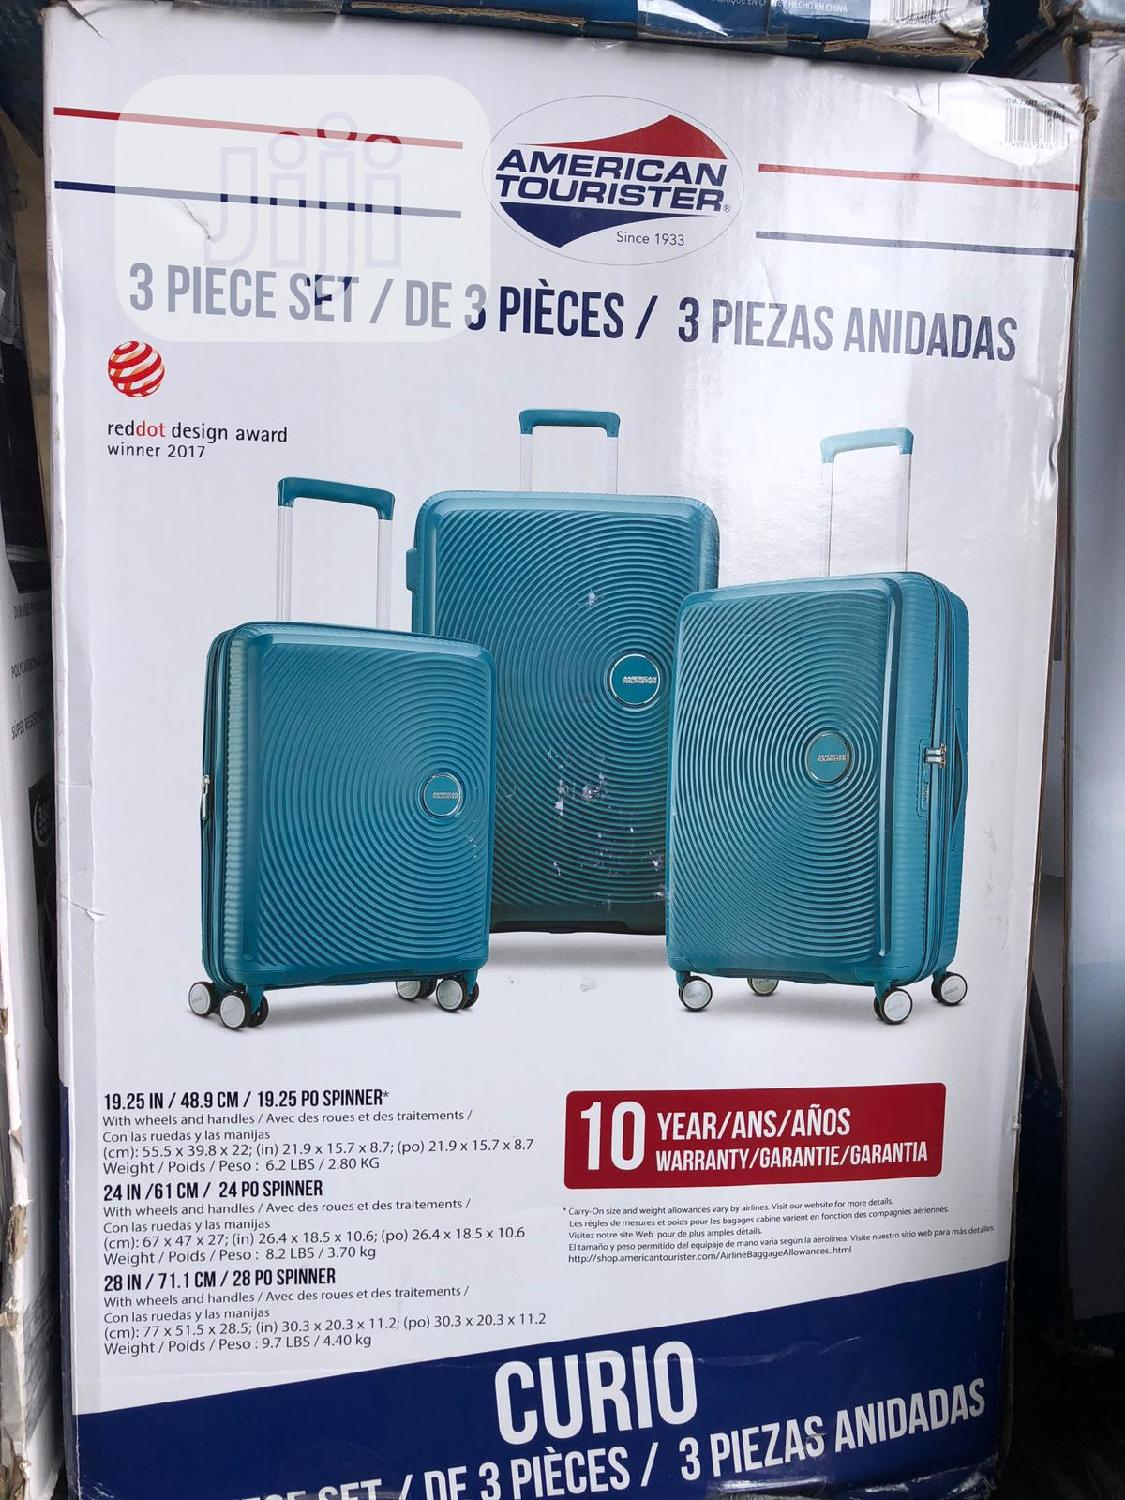 American Tourister 3 Piece Luggage Set | Bags for sale in Ojo, Lagos State, Nigeria